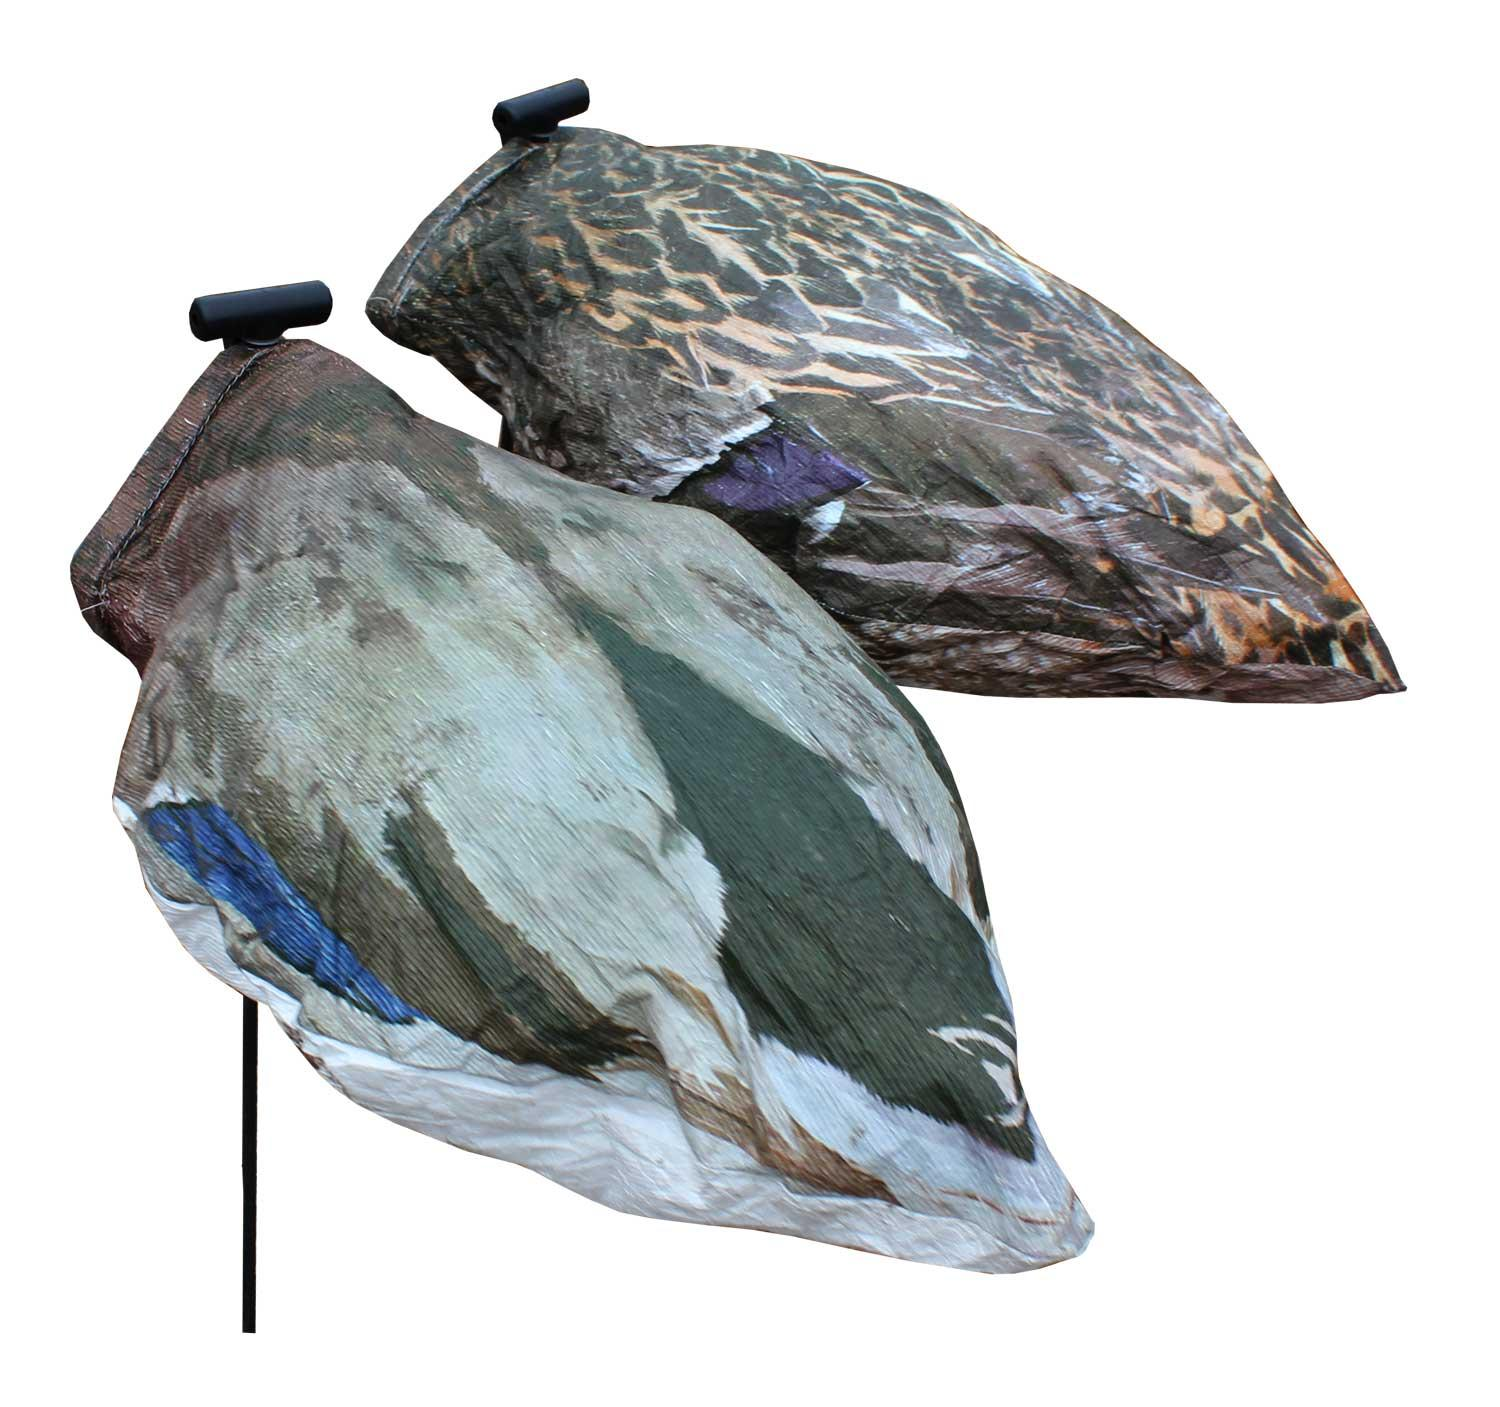 White Rock Decoys Headless Mallard Decoys - 12 Pack_1.jpg